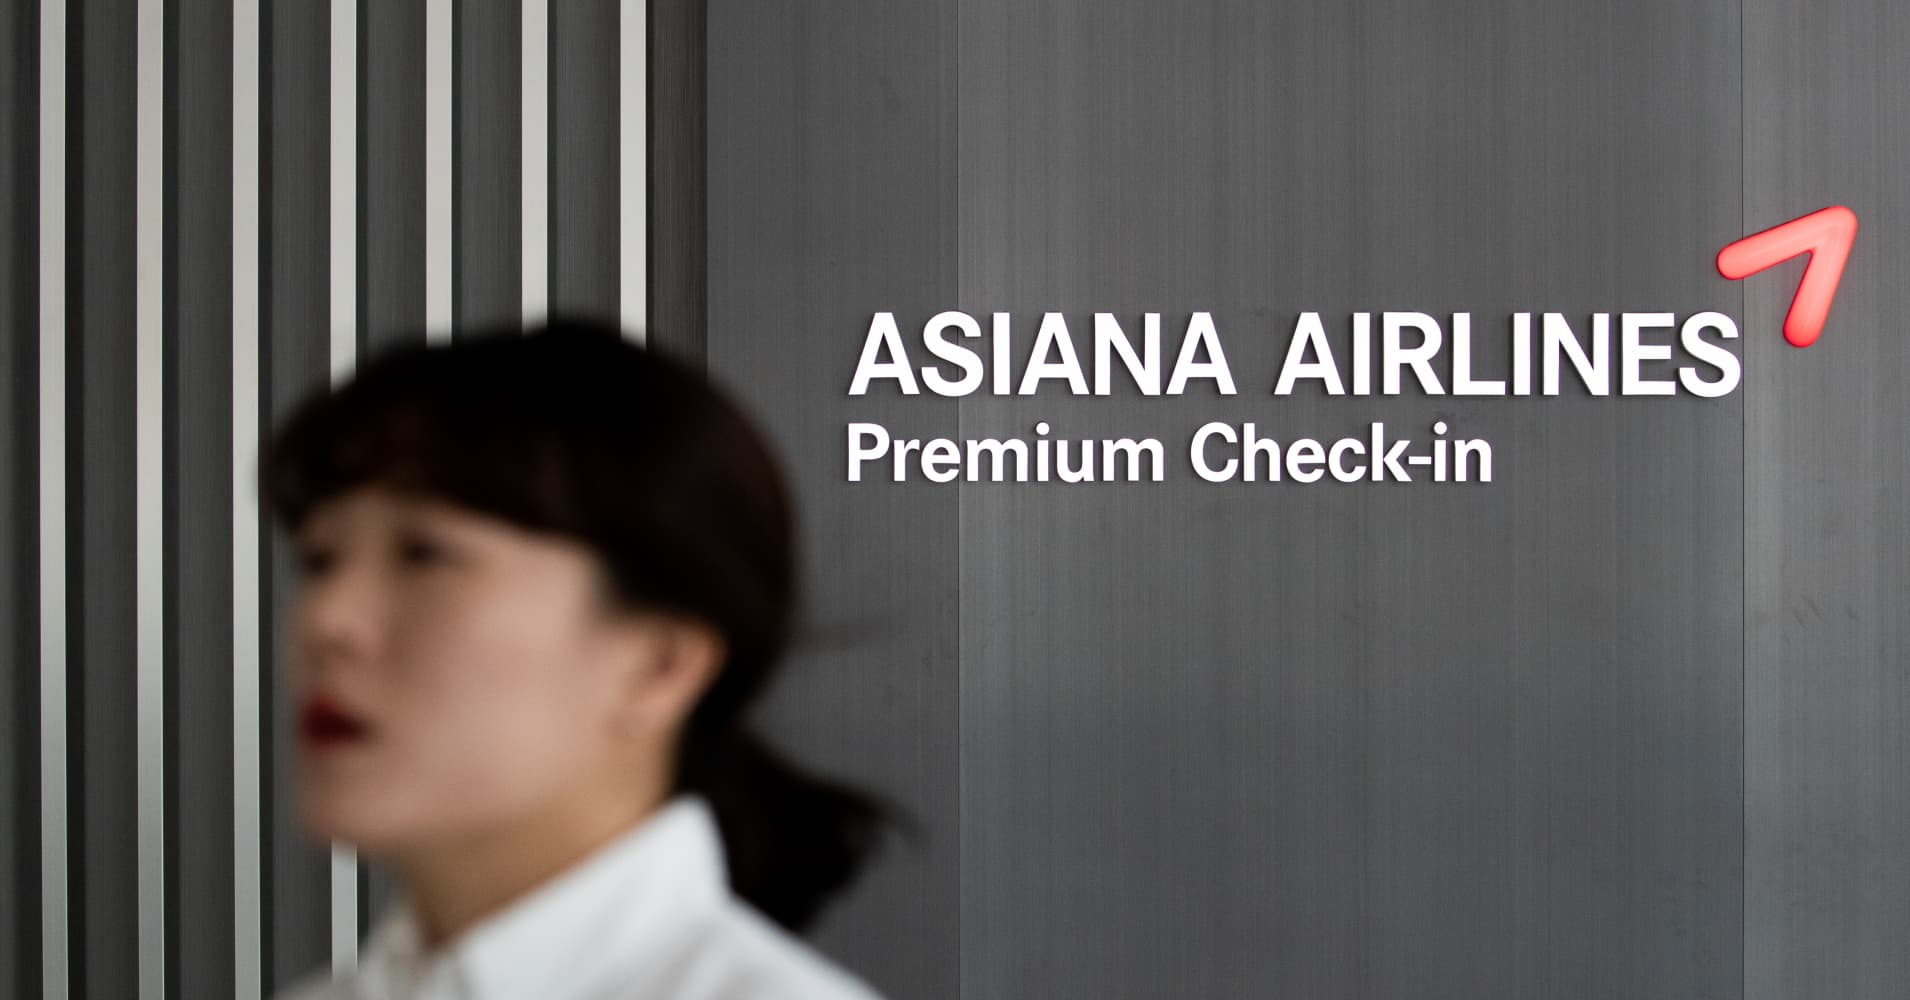 South Korea's Asiana Airlines to receive $1.4 billion from creditors